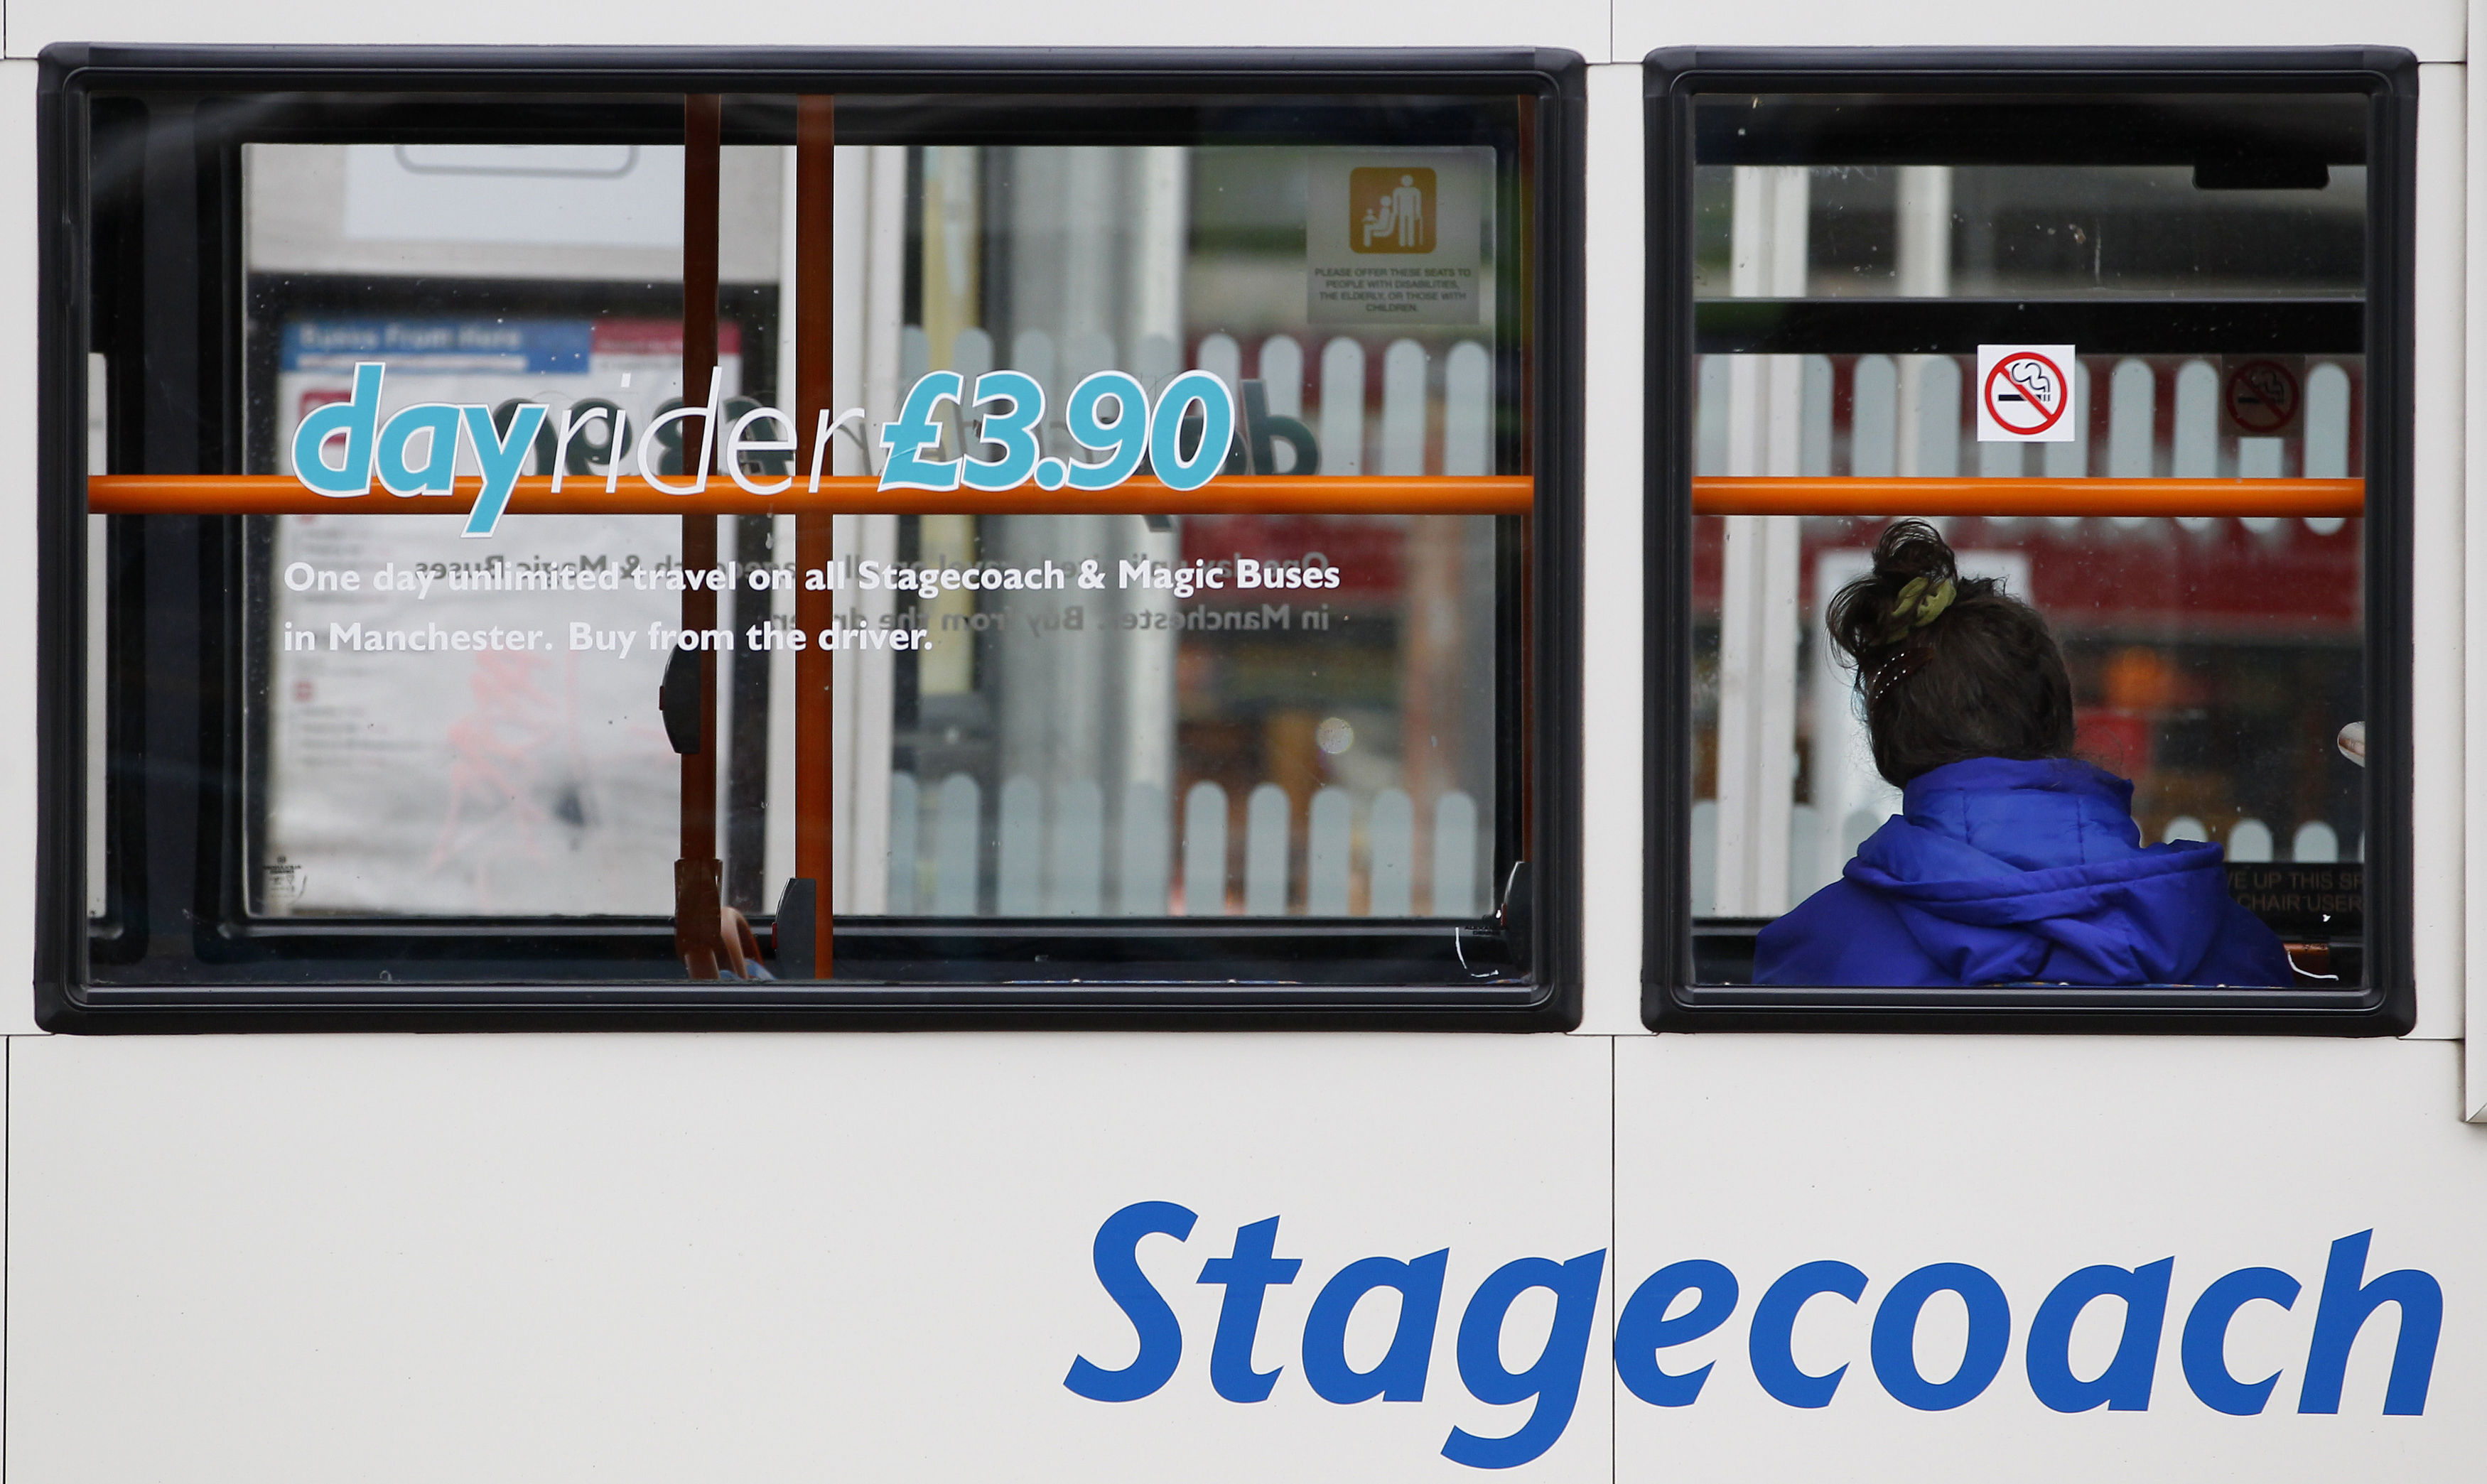 Stagecoach profits dip on rail franchise woes